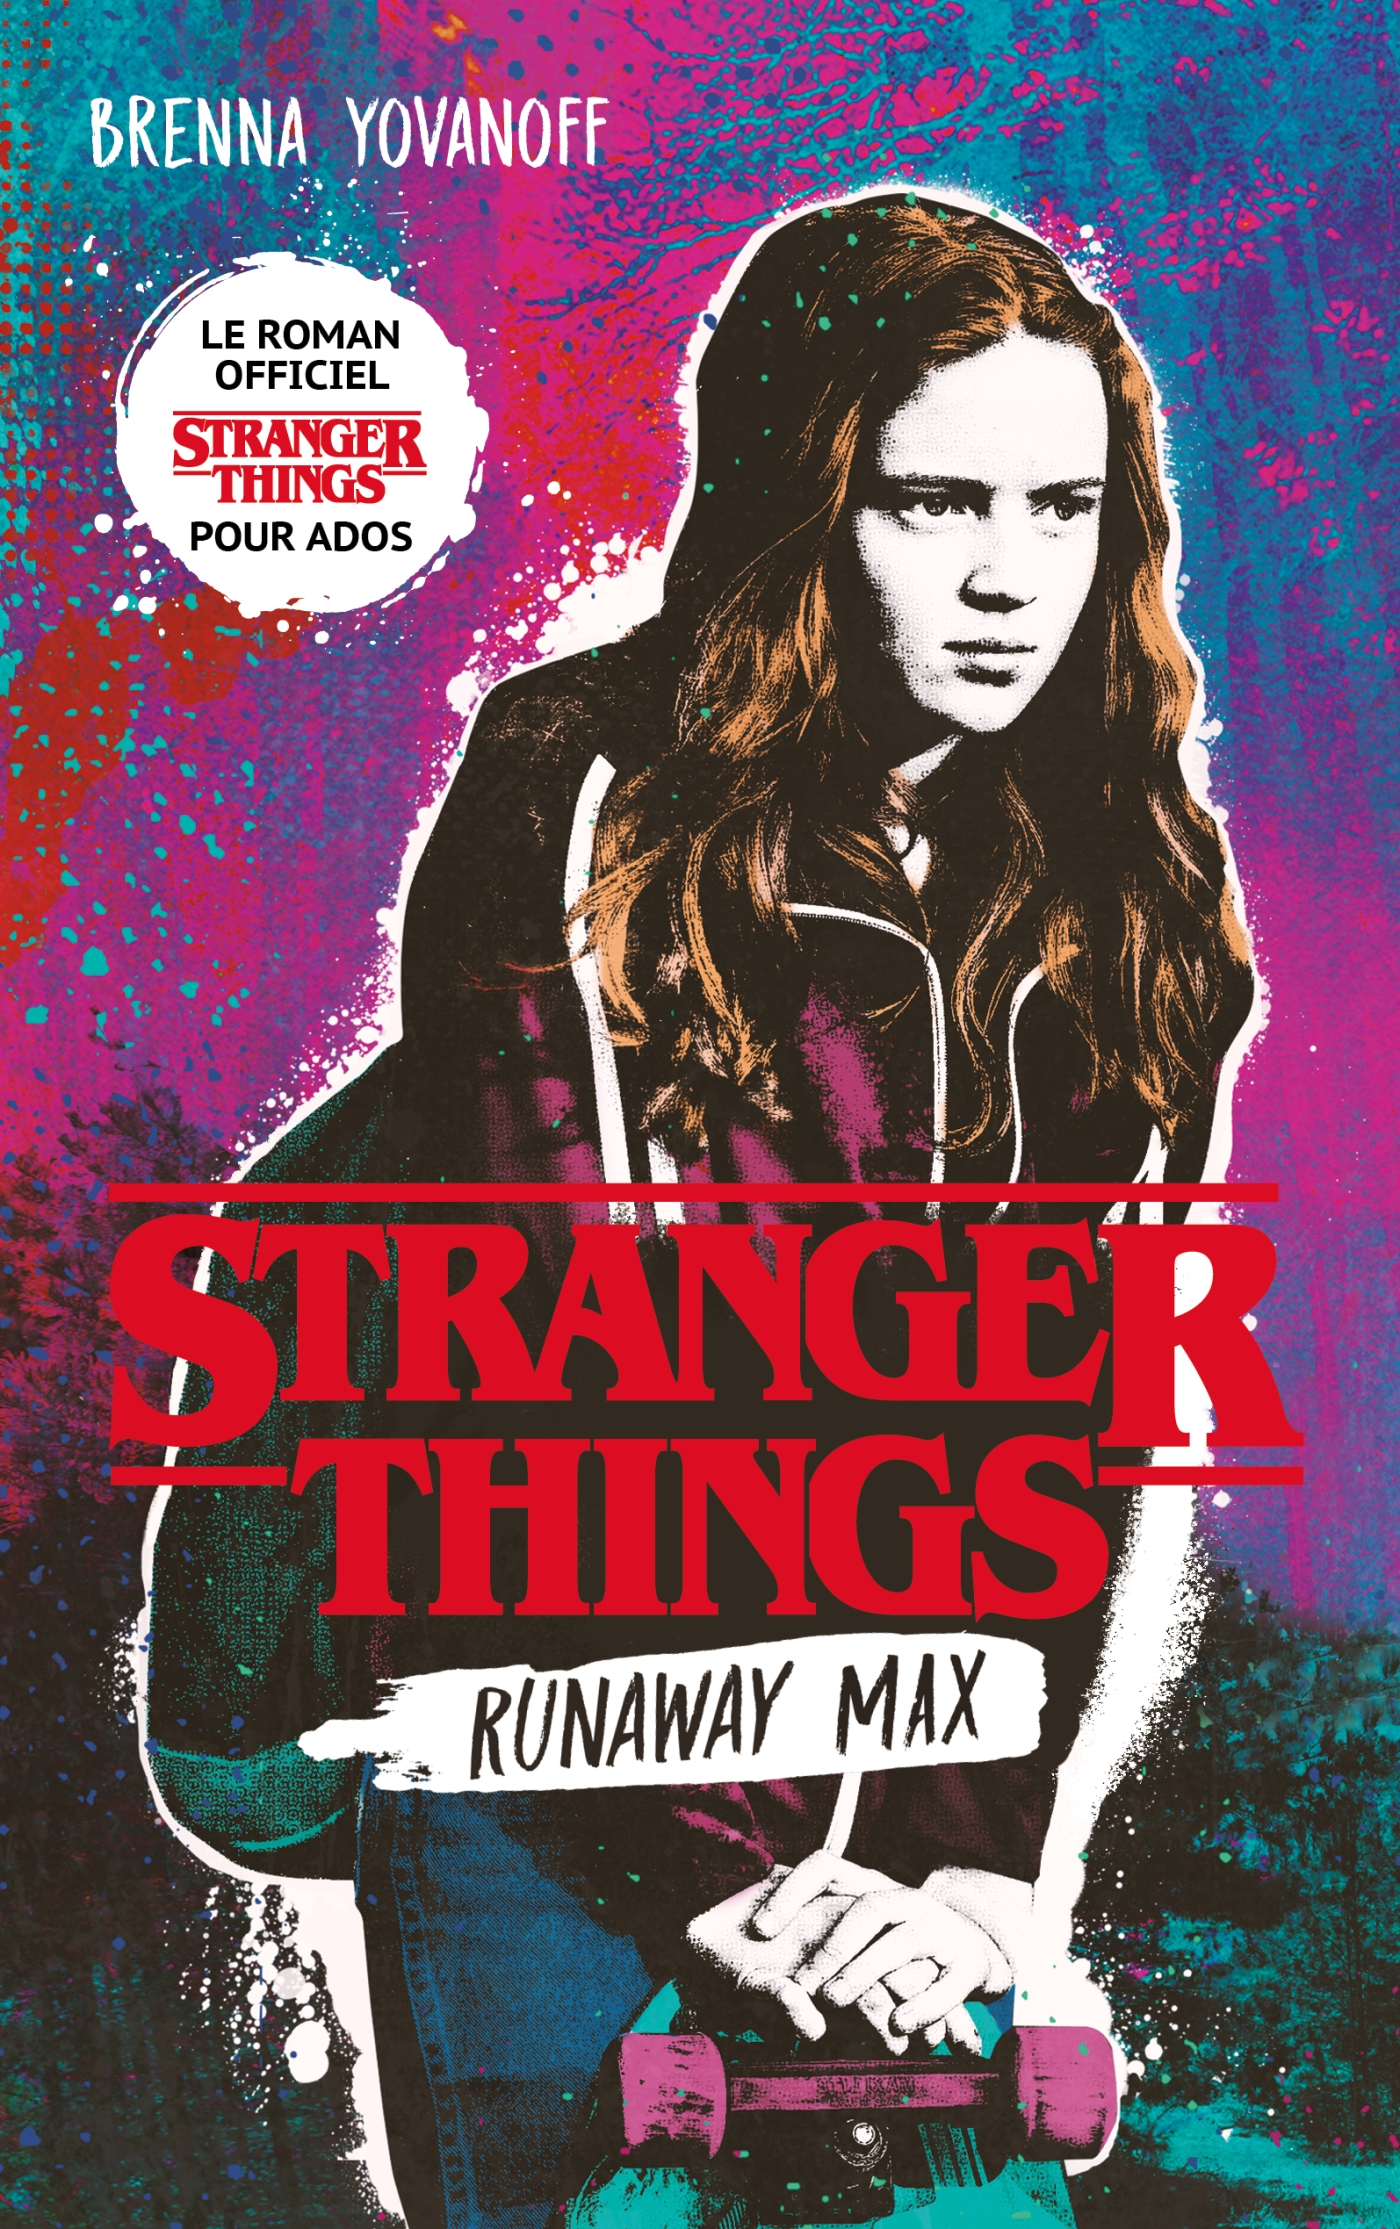 Stranger Things - Runaway Max - Le roman officiel pour ados